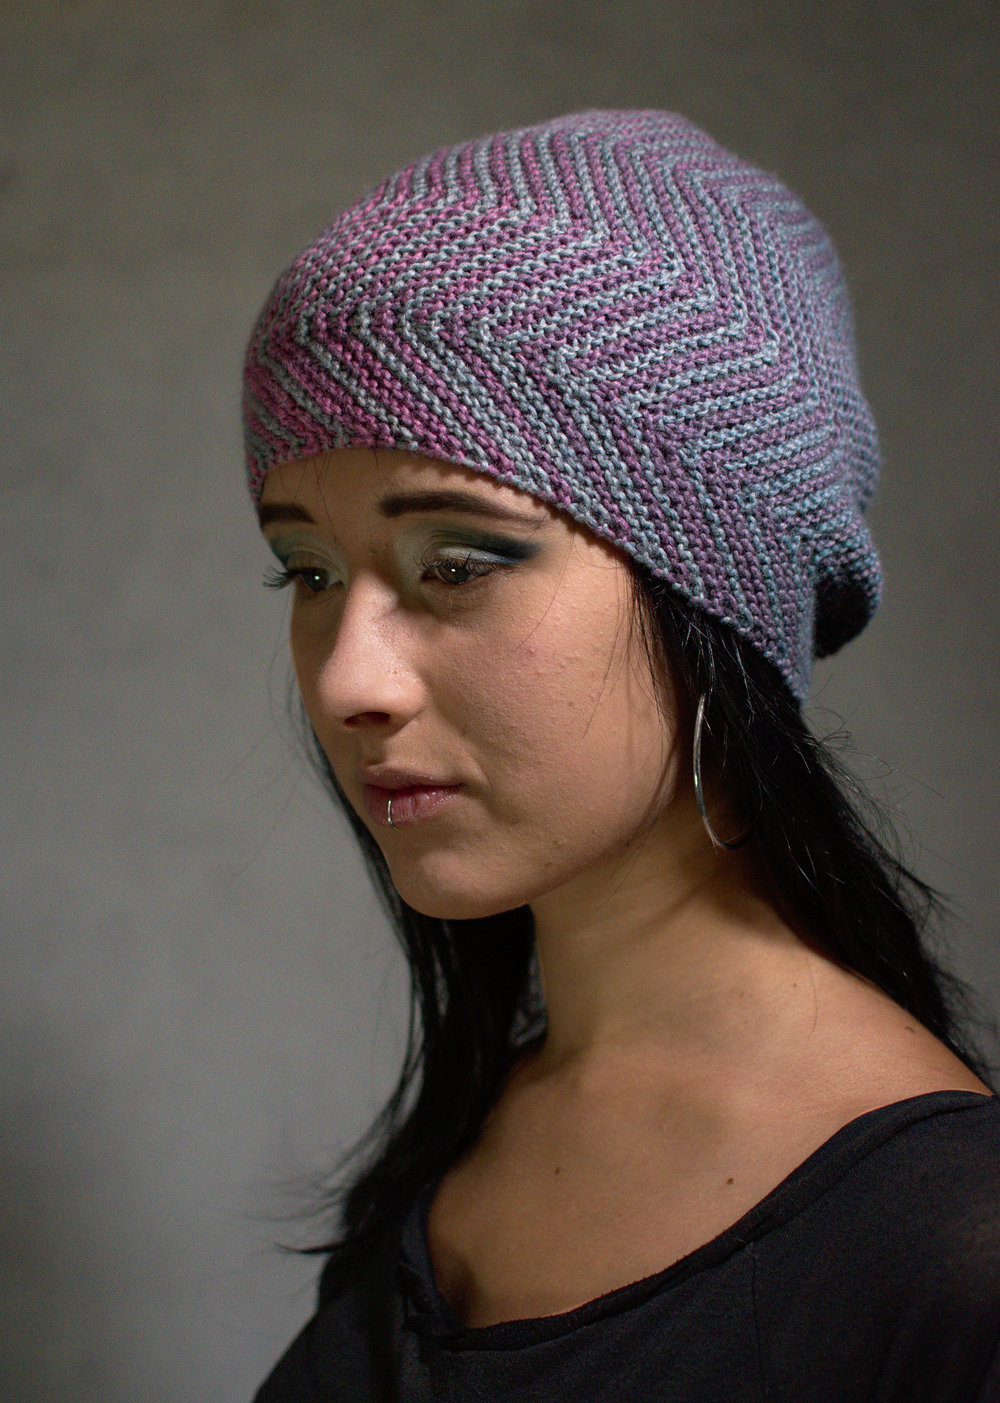 Juxta sideways knit Hat knitting pattern for gradient yarns